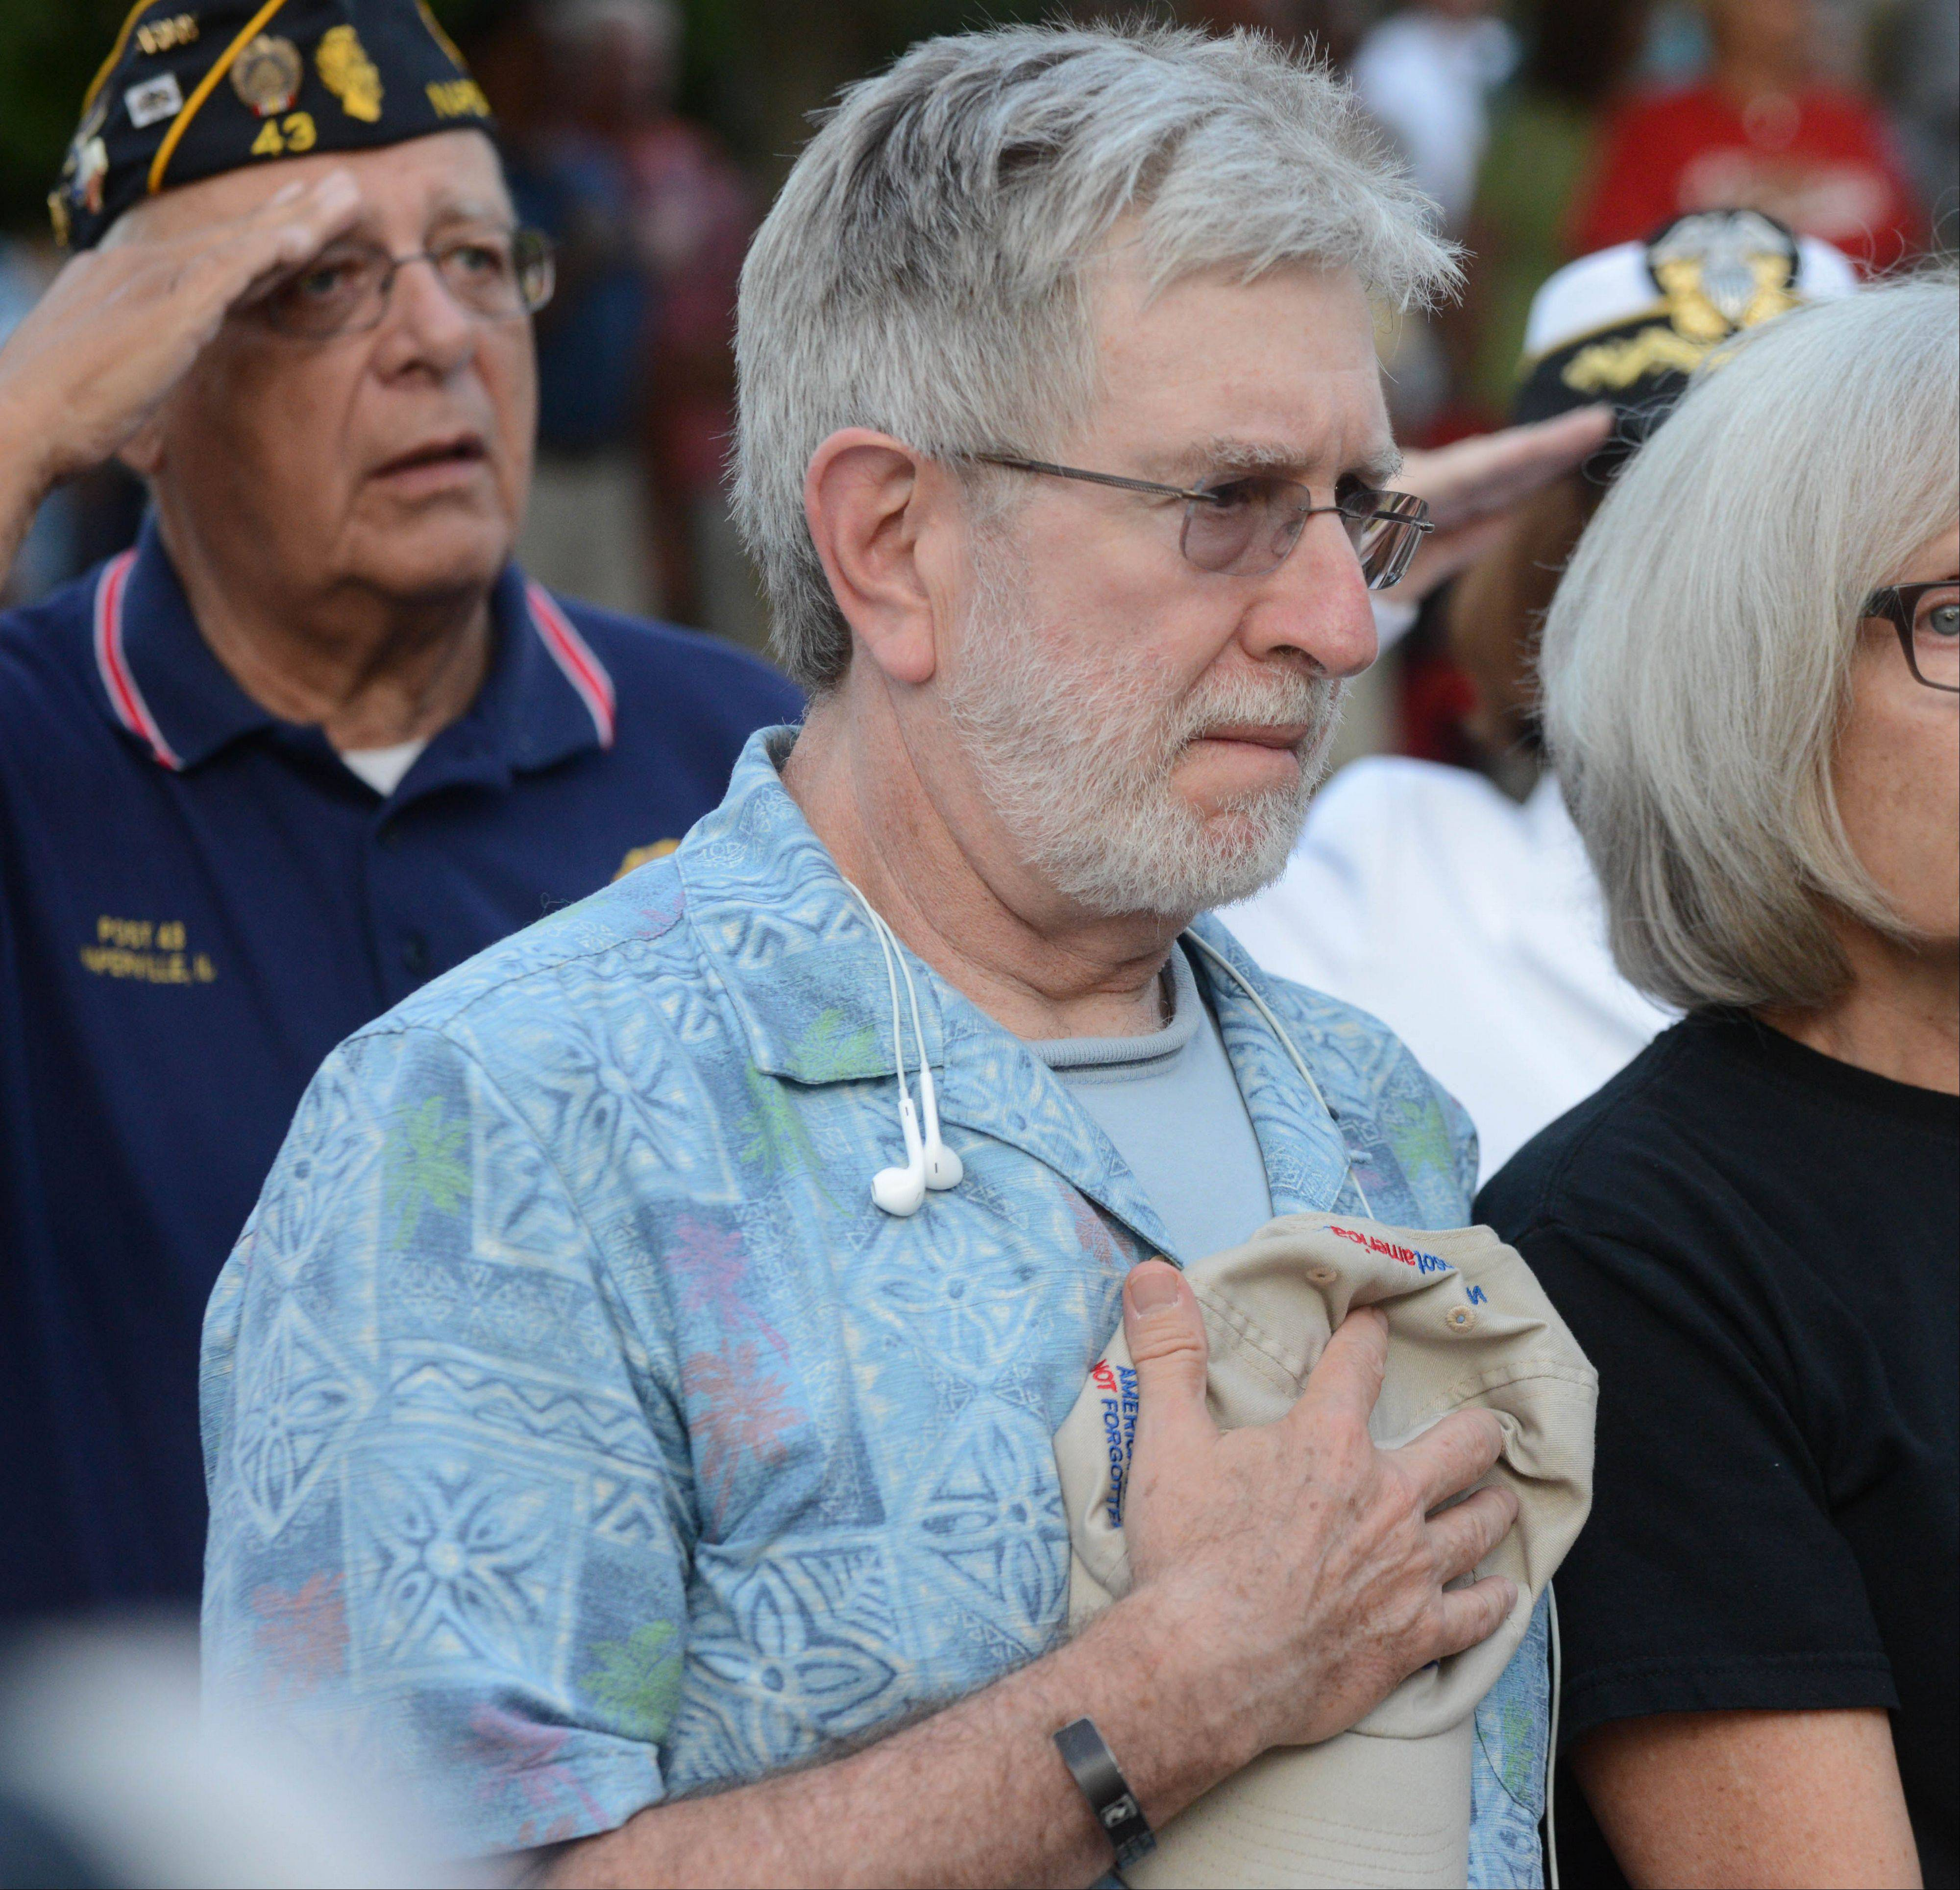 Andy Weiss of Naperville recites the Pledge of Allegiance on Wednesday during Naperville's ceremony marking the 12th anniversary of the Sept. 11 terrorist attacks.